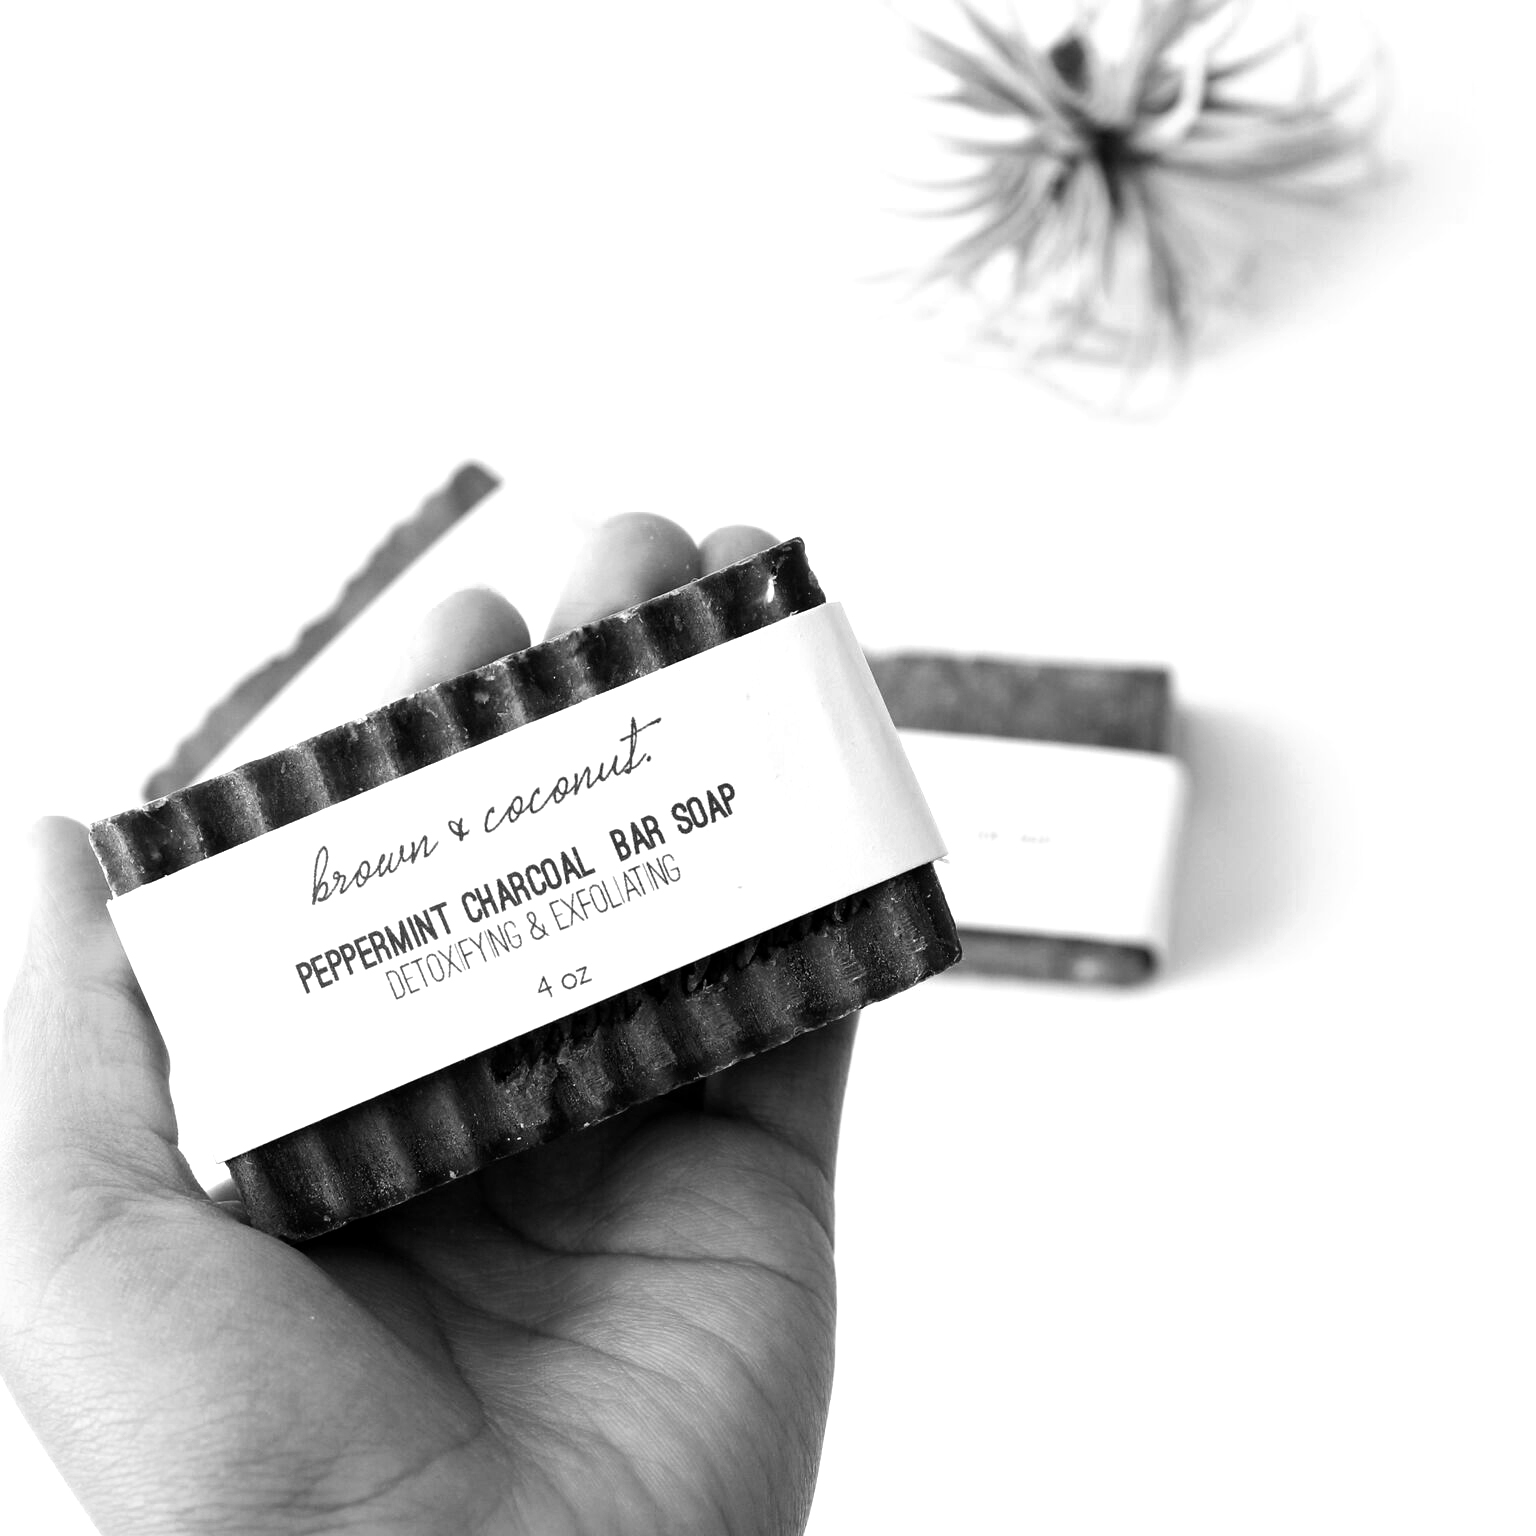 Peppermint-Charcoal-Bar-Soap-Brown-And-Coconut_preview.jpg